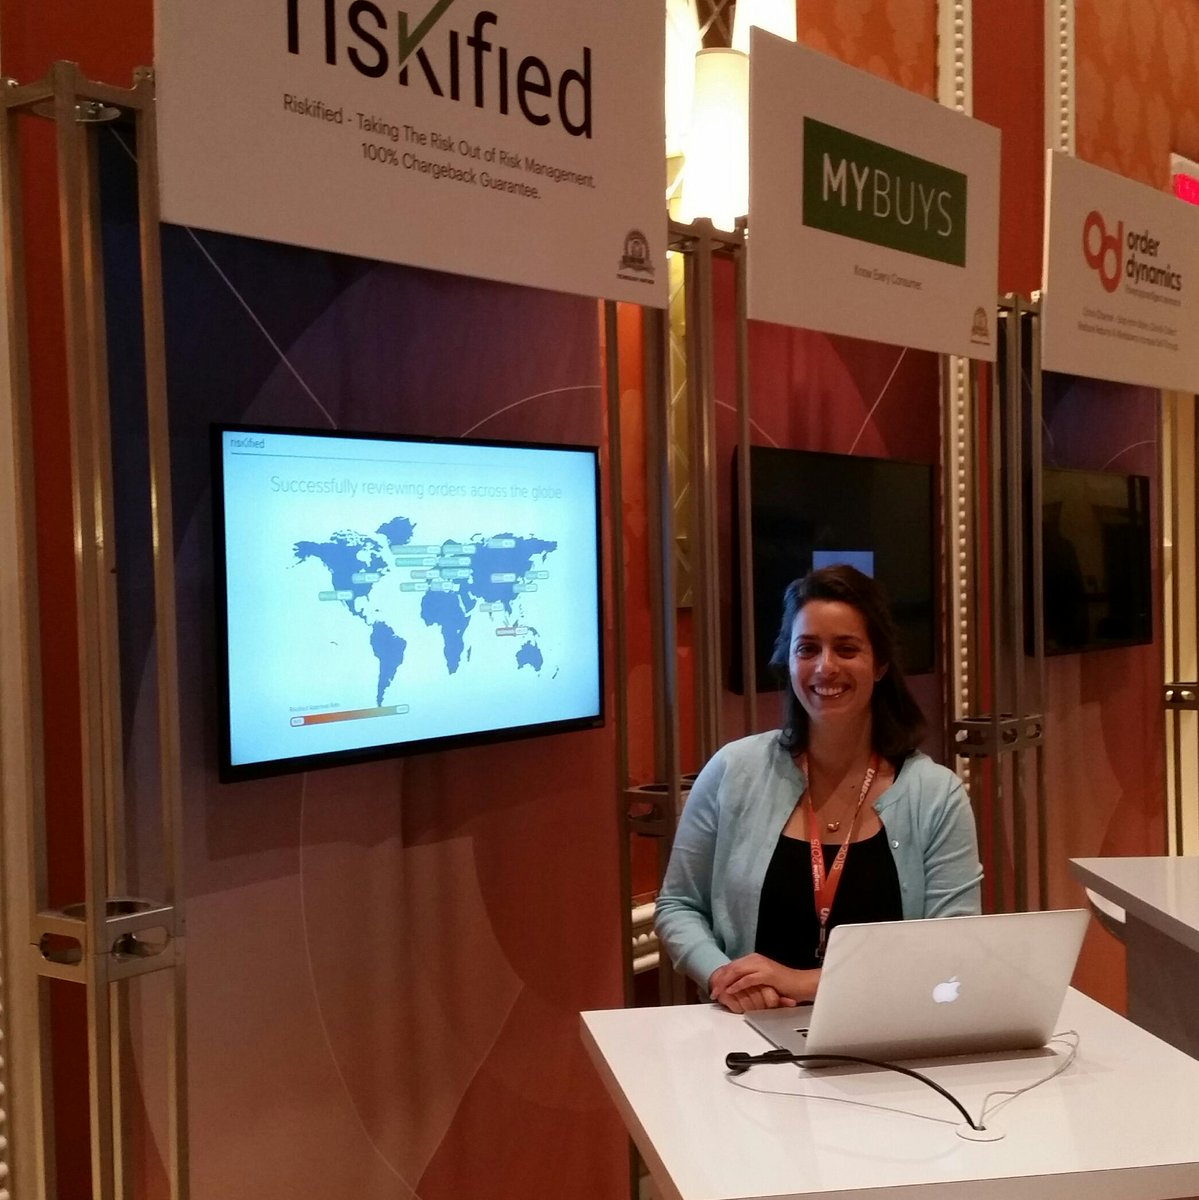 Riskified: Thrilled to be attending & exhibiting @magento #ImagineCommerce this week. Drop by kiosk 3 to meet our team! http://t.co/lV8FsEs8Zs